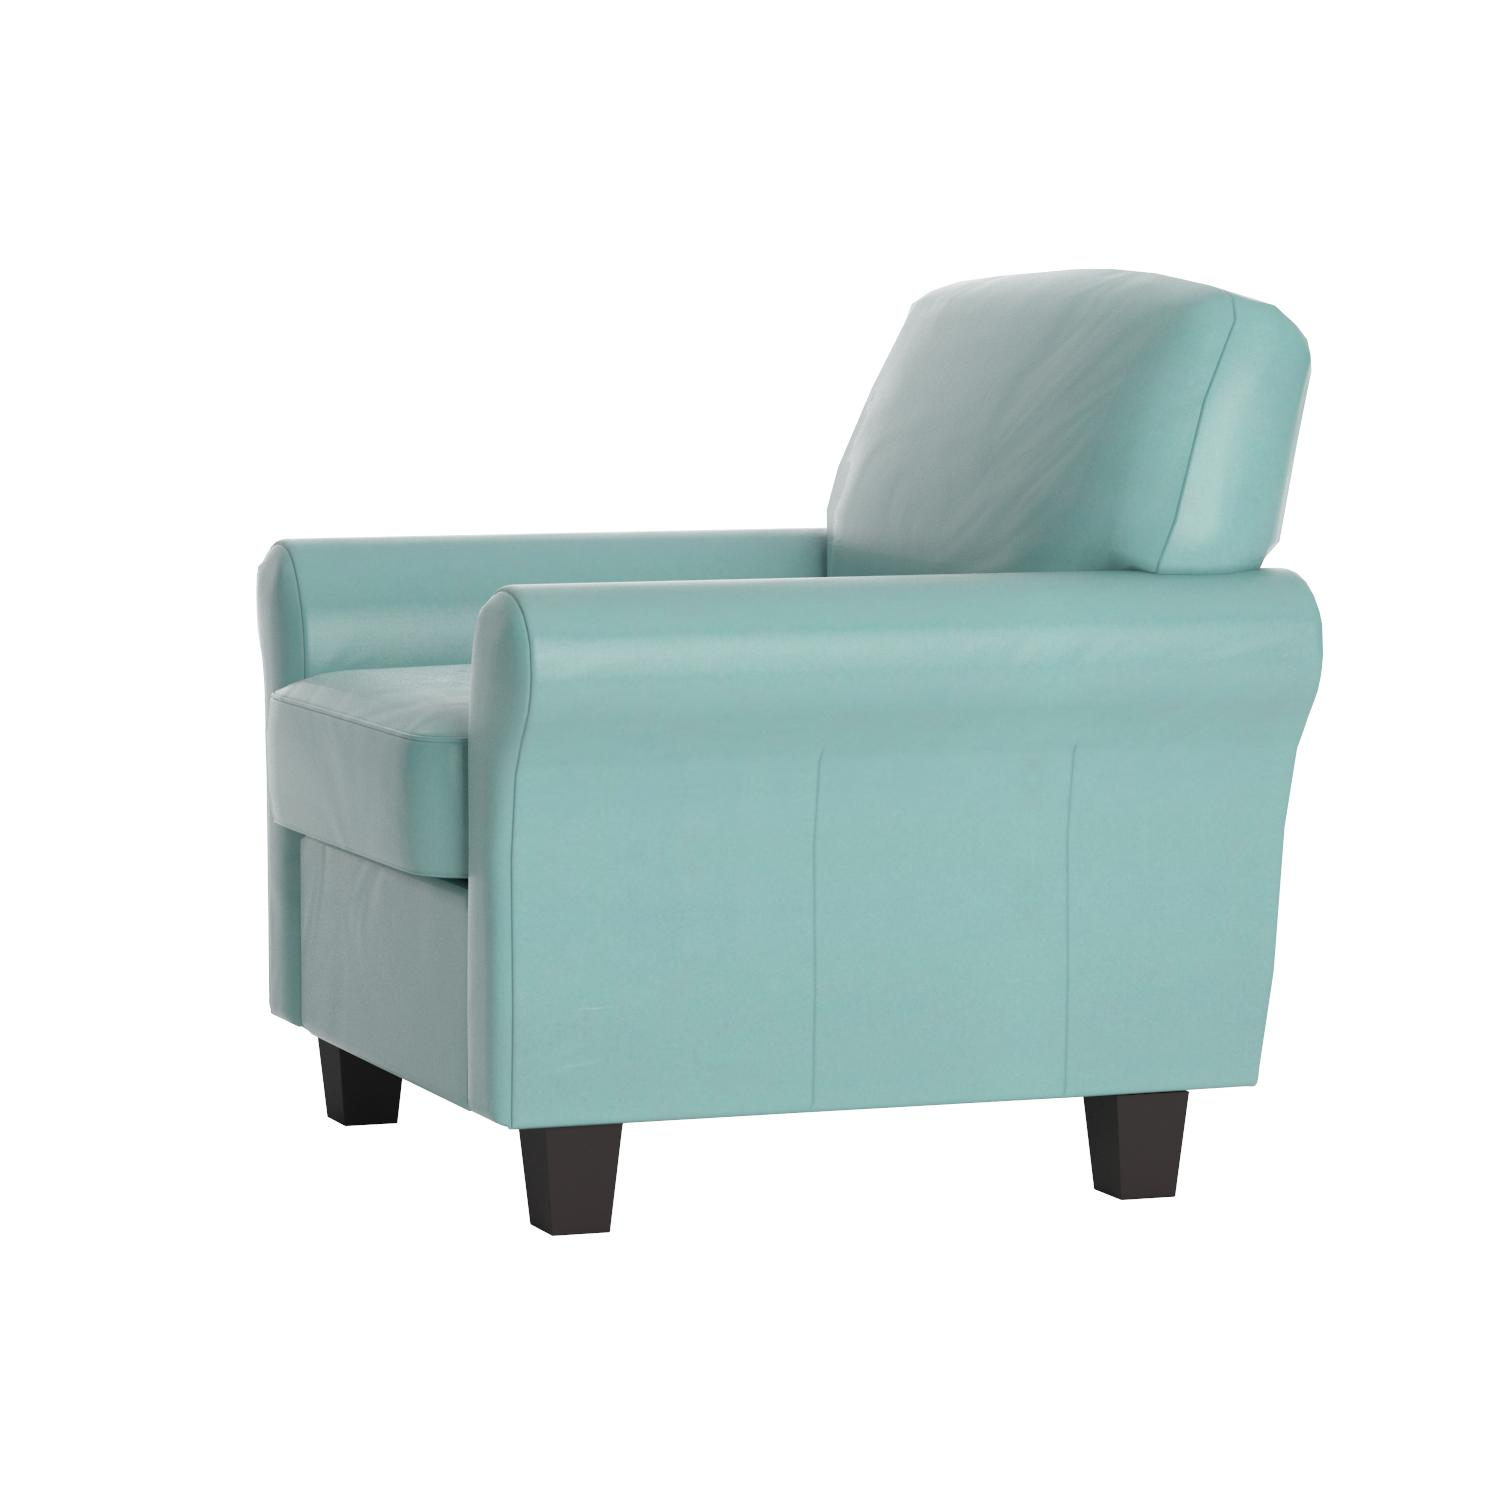 Teal Chair Amazoncom Best Selling Modern Club Chair Teal Blue Kitchen